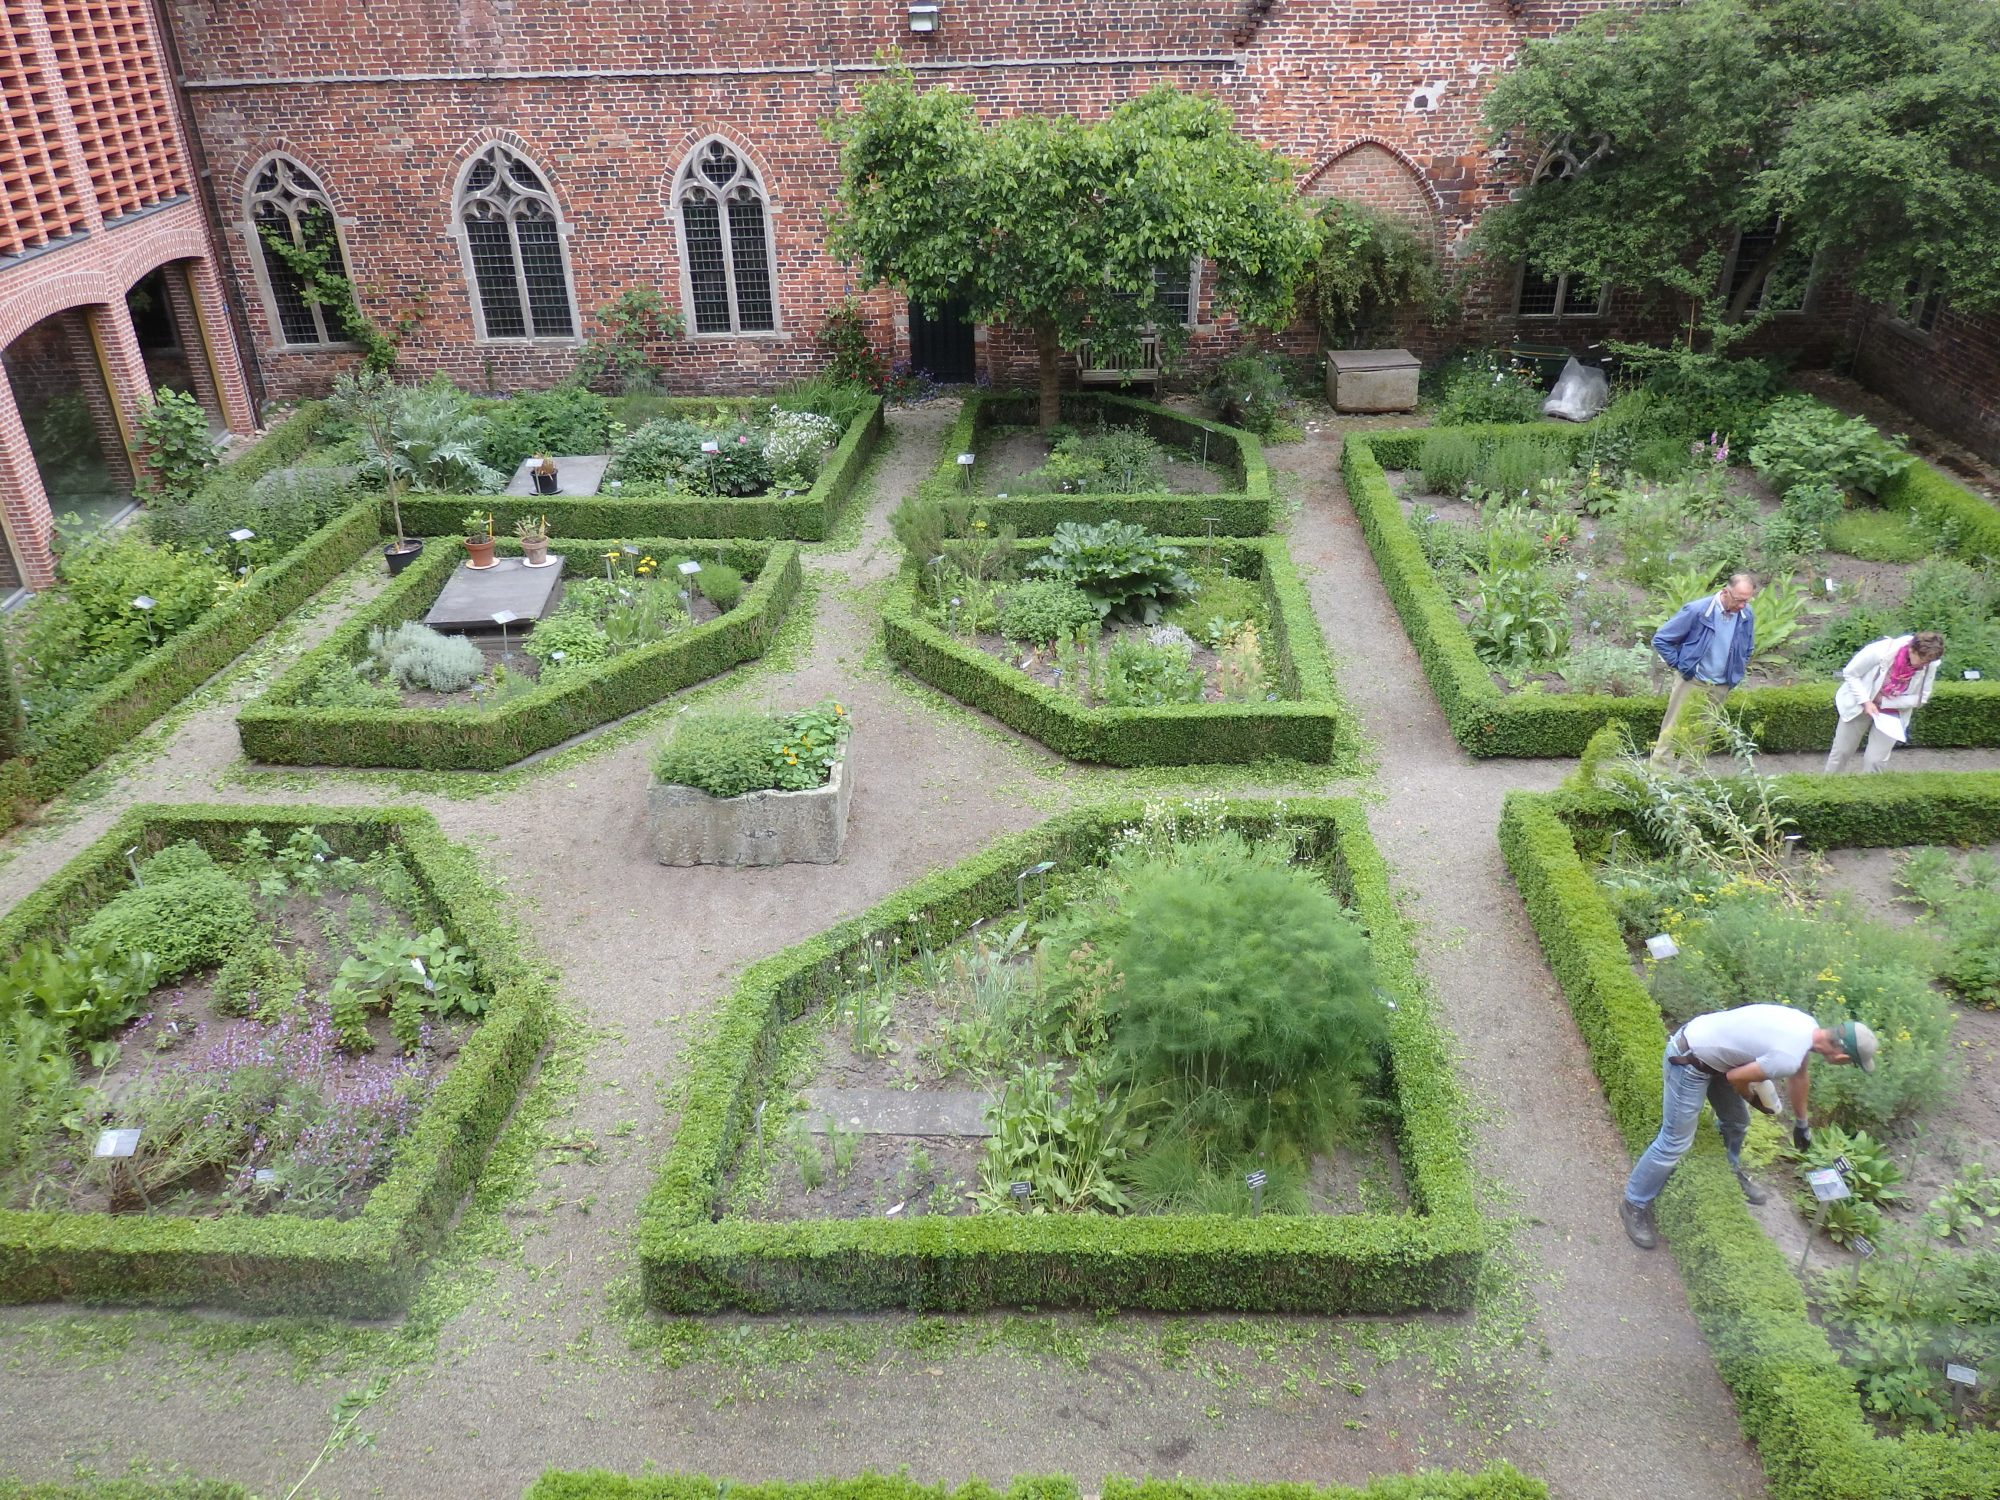 a view of the interior garden at Ter Apel Cloister. You can see a bit of the new addition on the left.